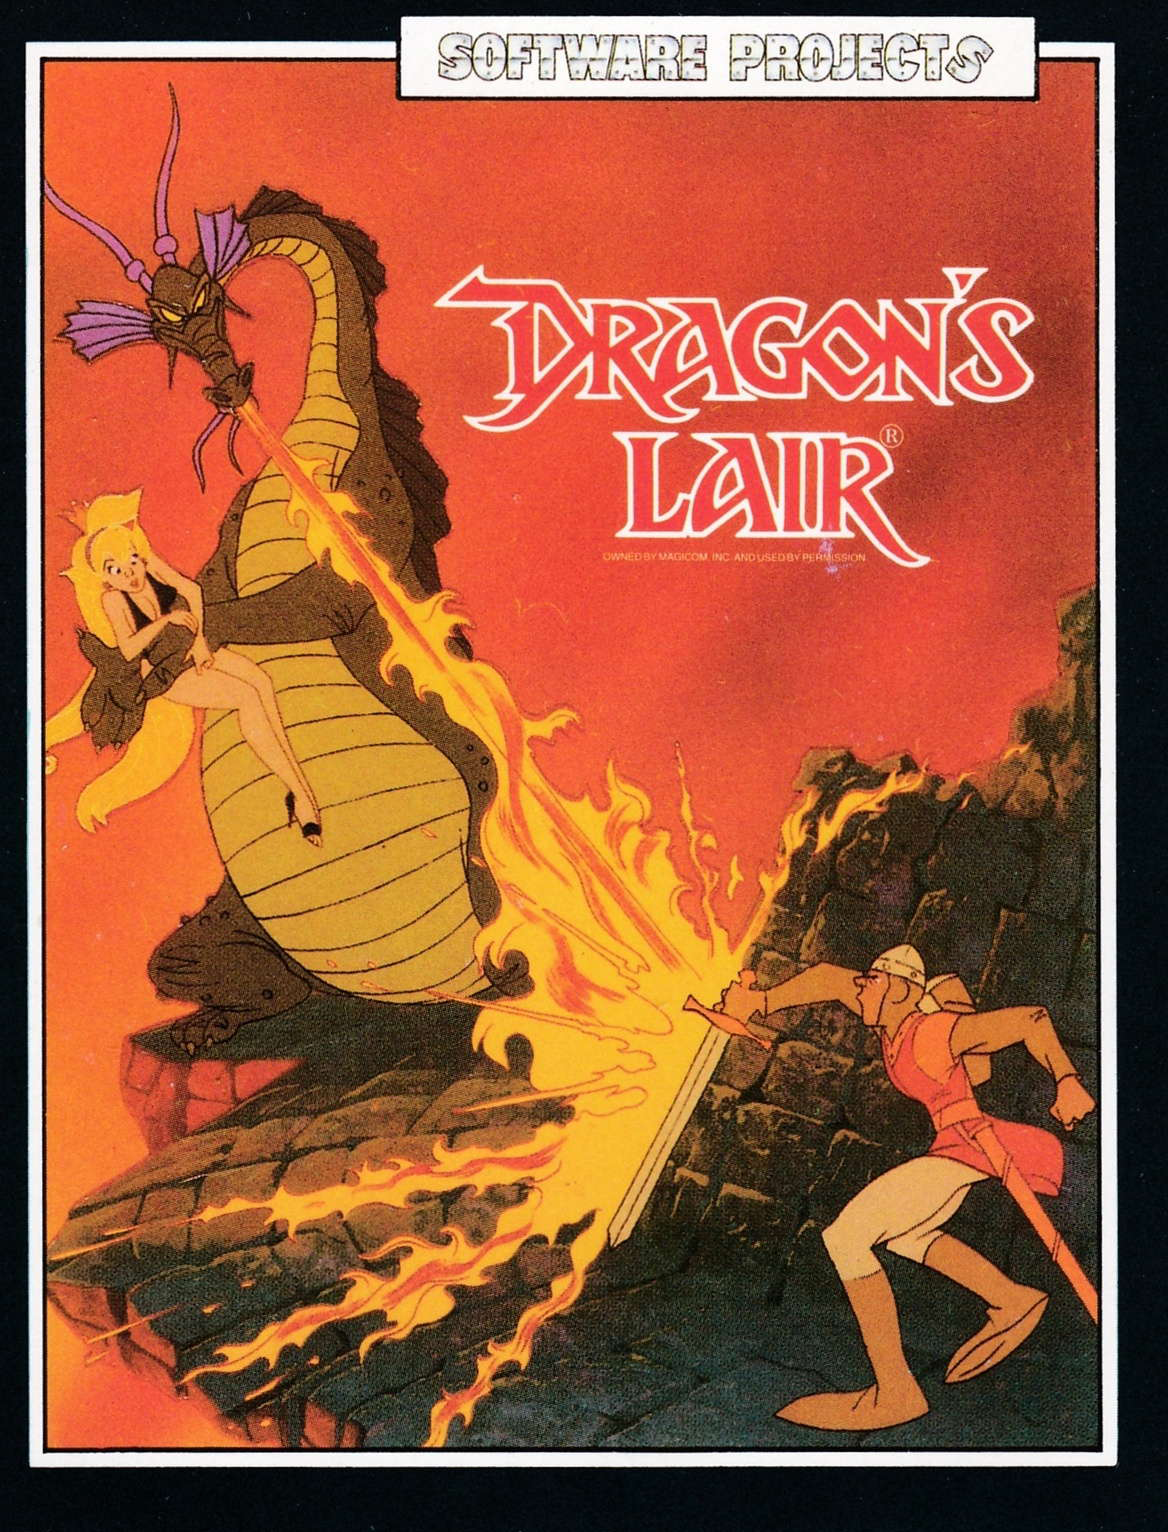 cover of the Amstrad CPC game Dragon's Lair  by GameBase CPC